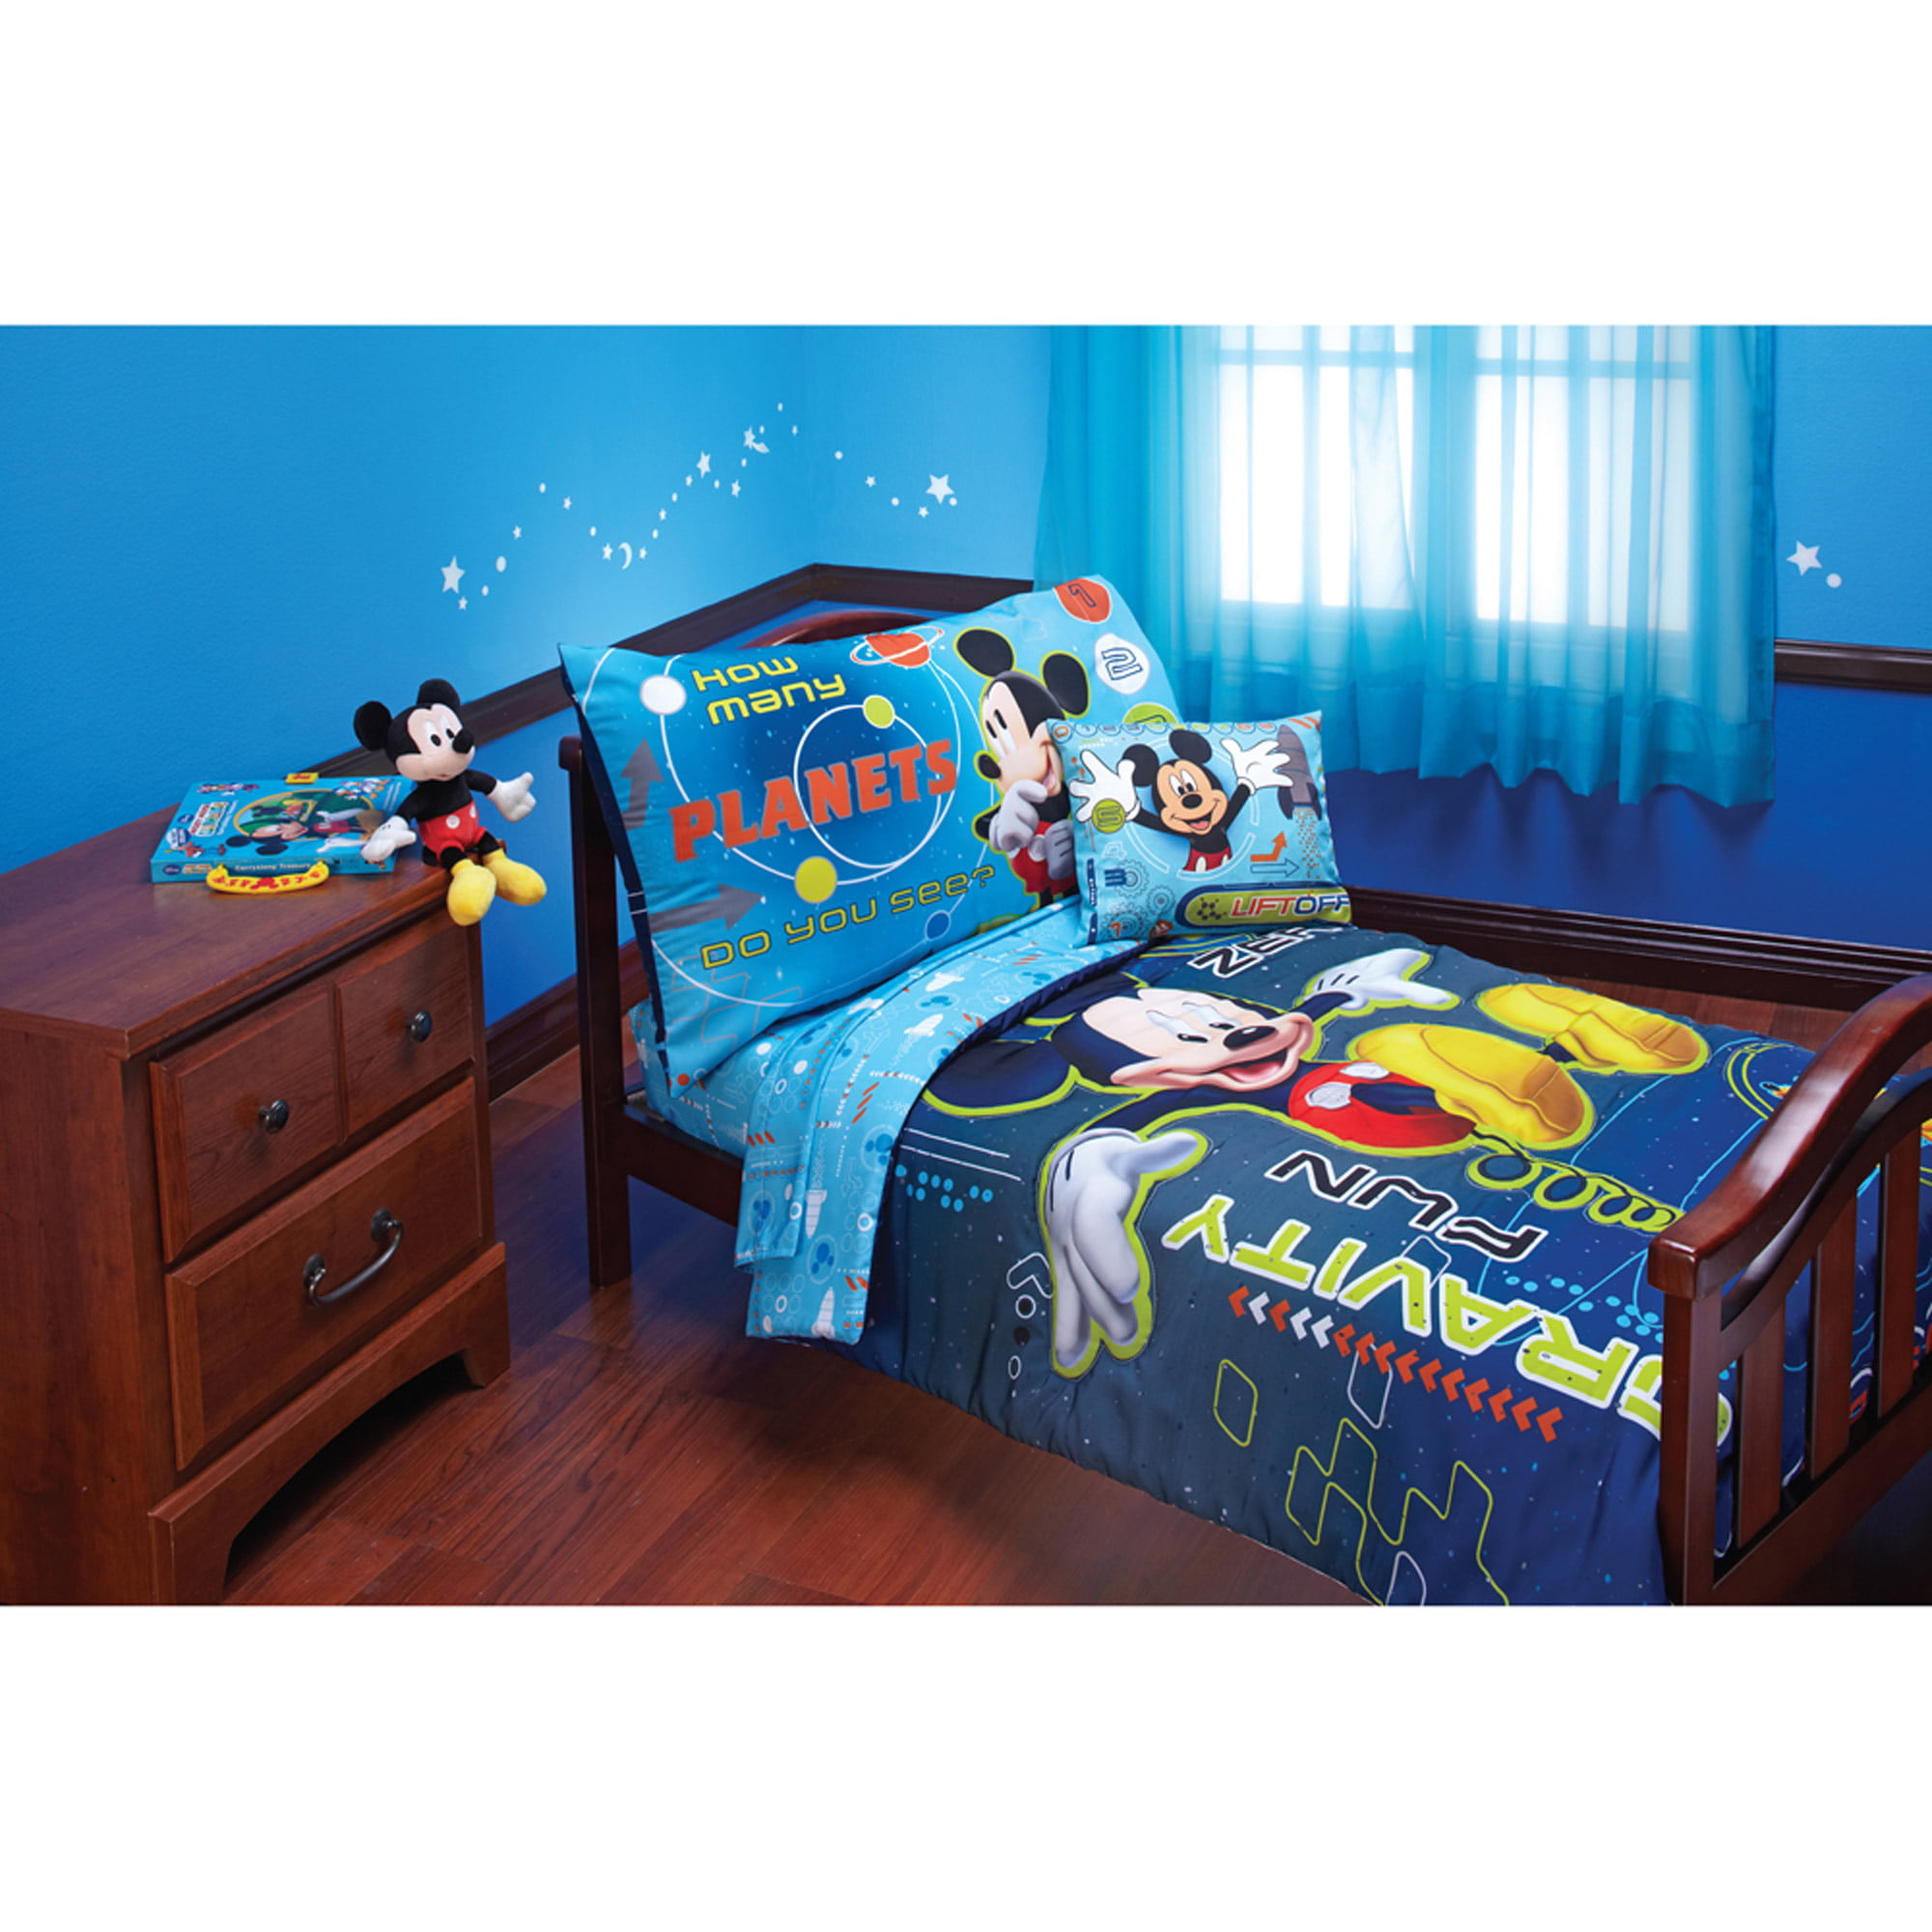 decoration best s htm on in something a my ideas do baby and this bedroom toddler son love quilt gallery sheets like he crib would bed to with bedding clothes coverlet pinterest once